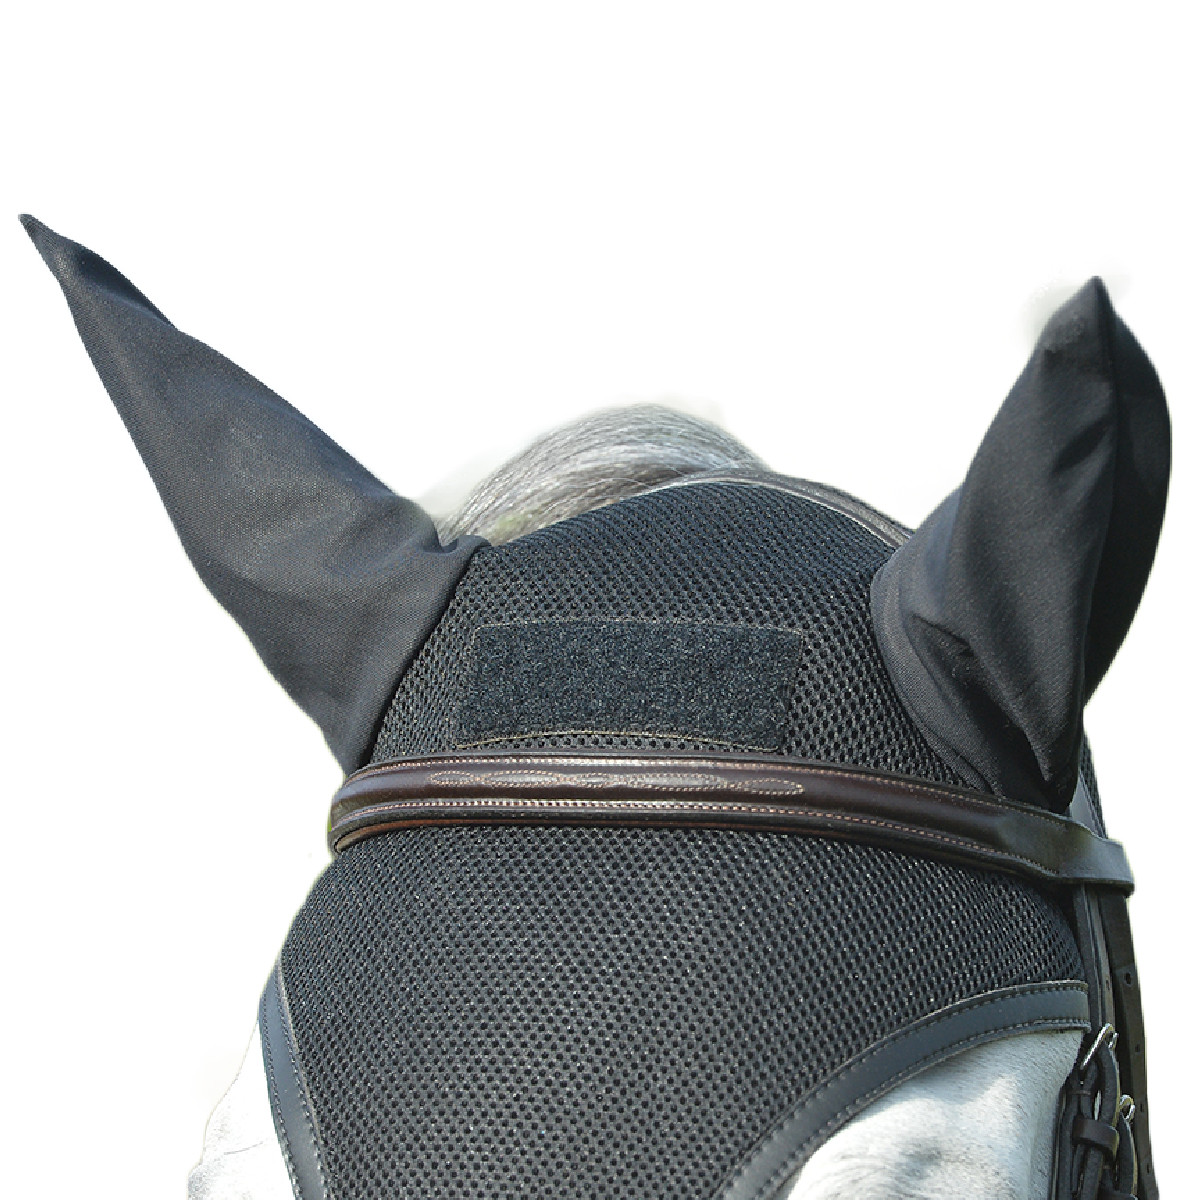 EquiFit® Headsup Bonnet No Logo Black